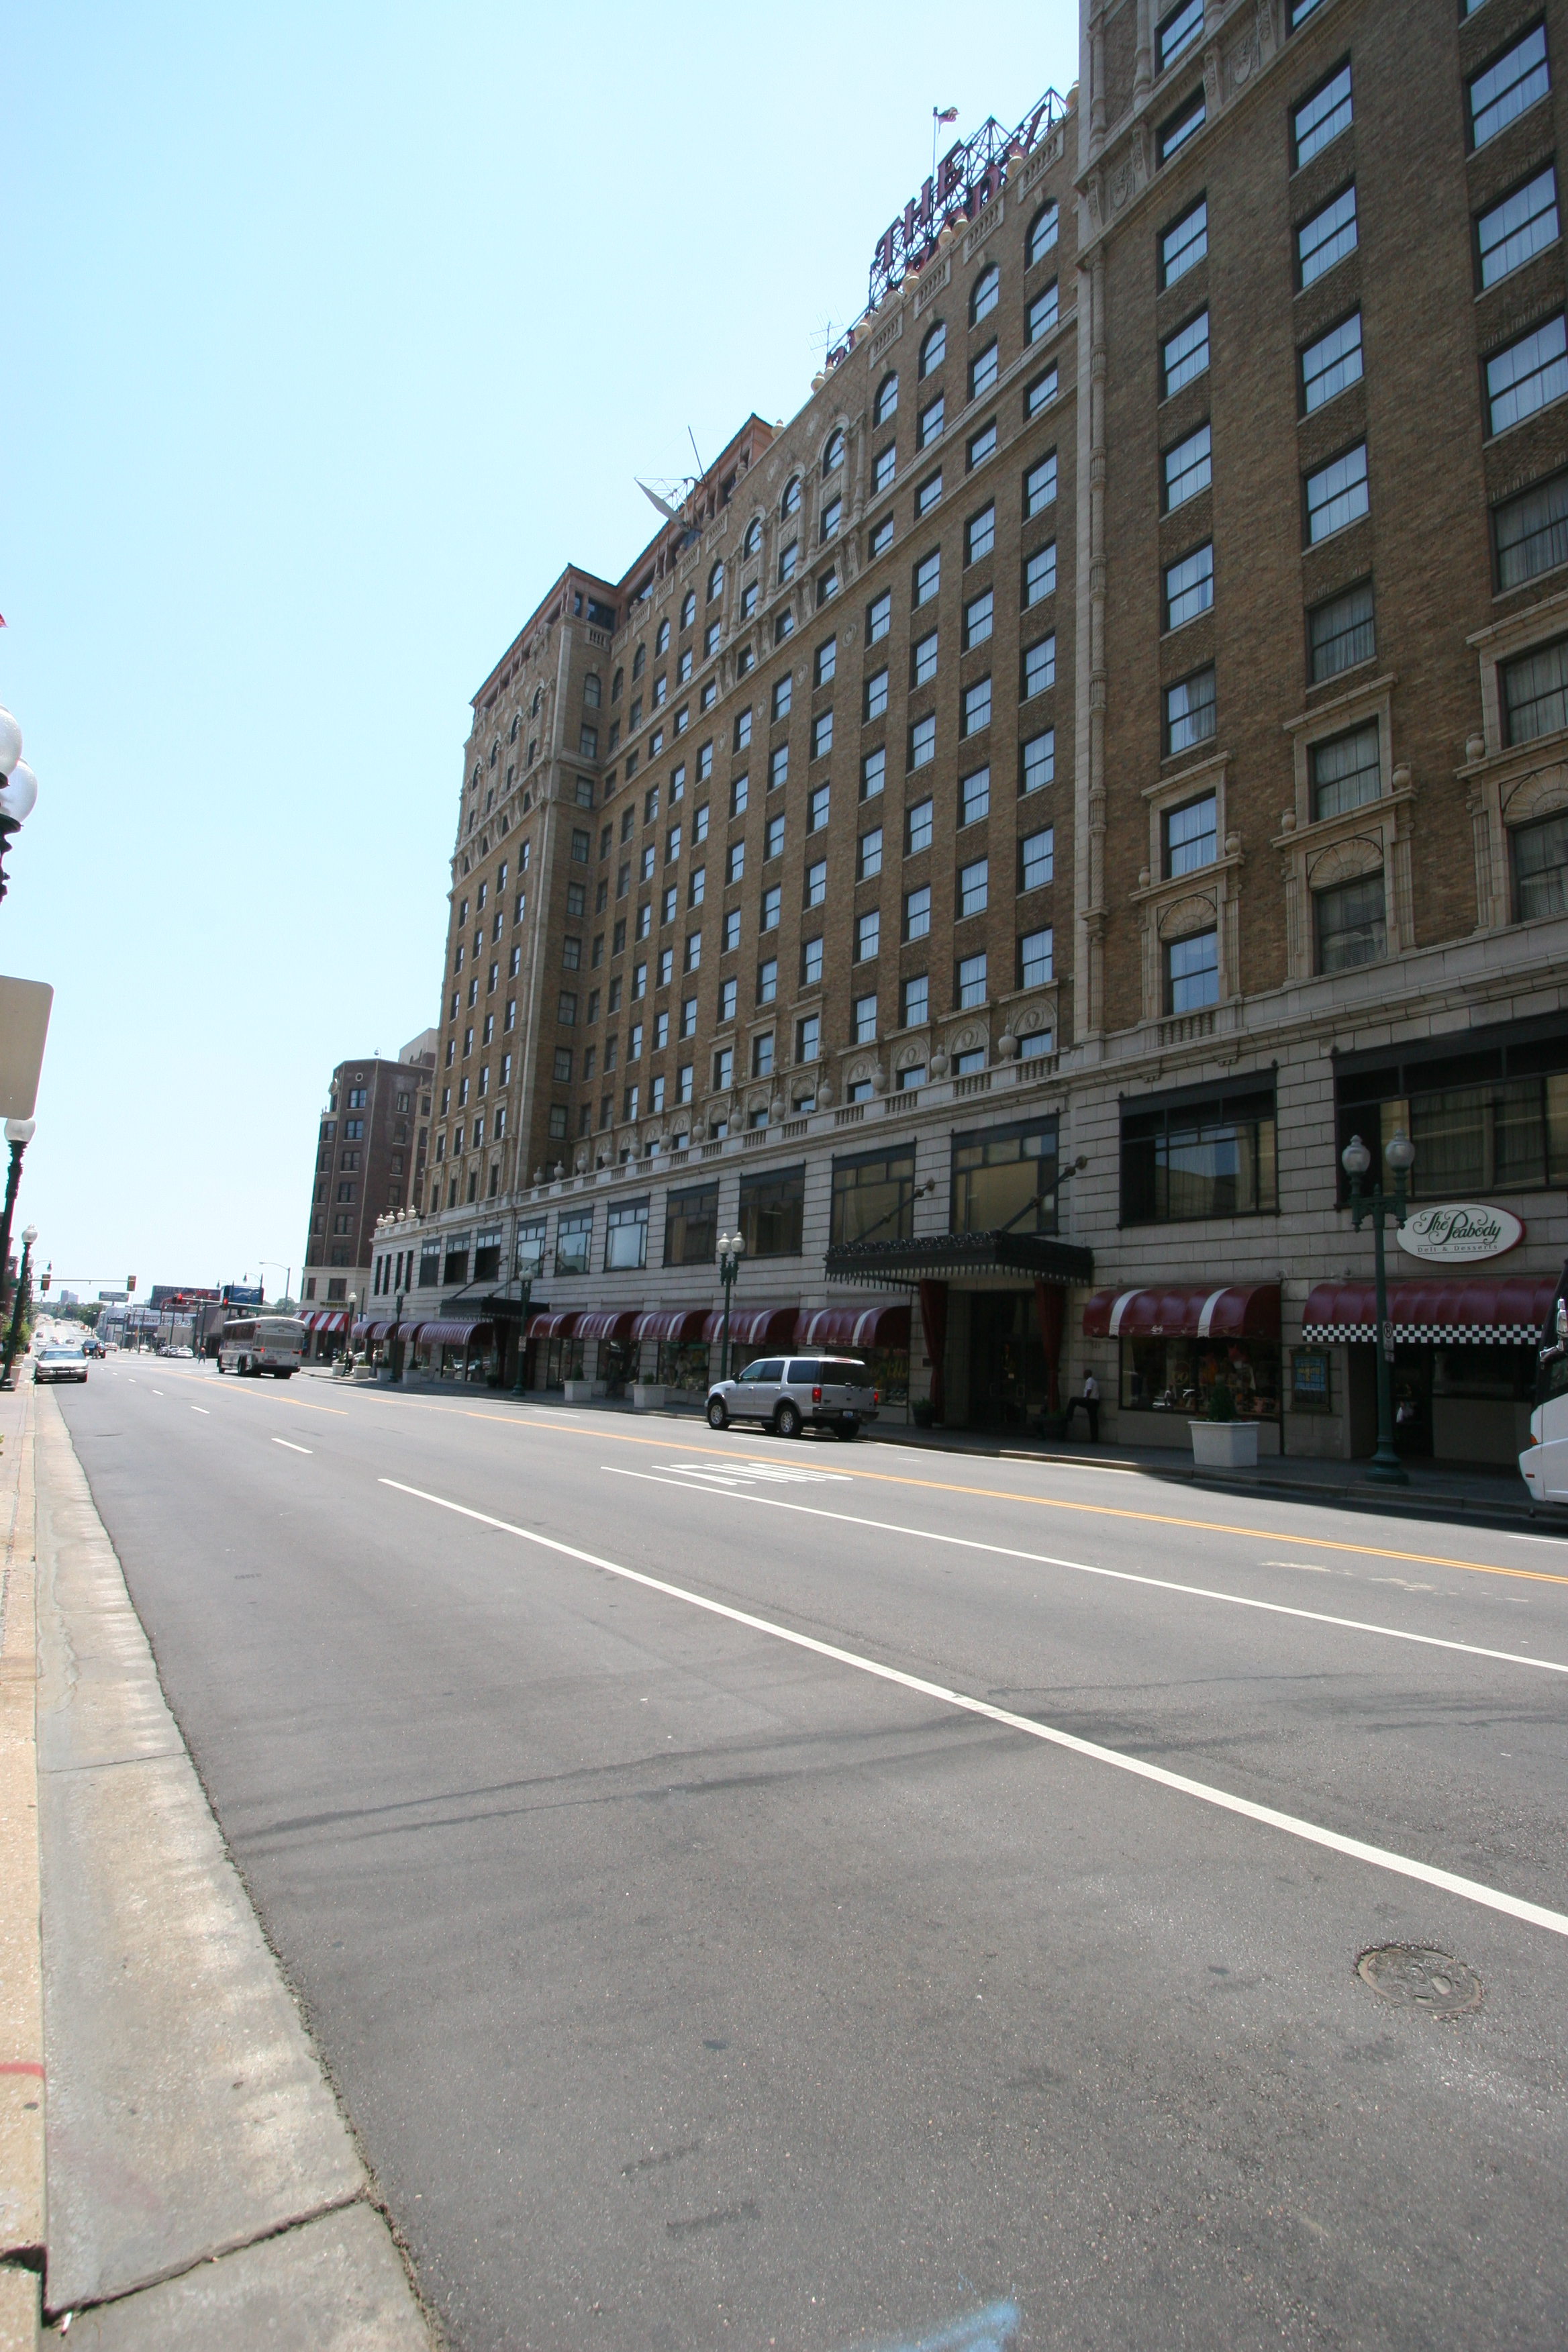 Peabody Hotel, hotel roofing contractors